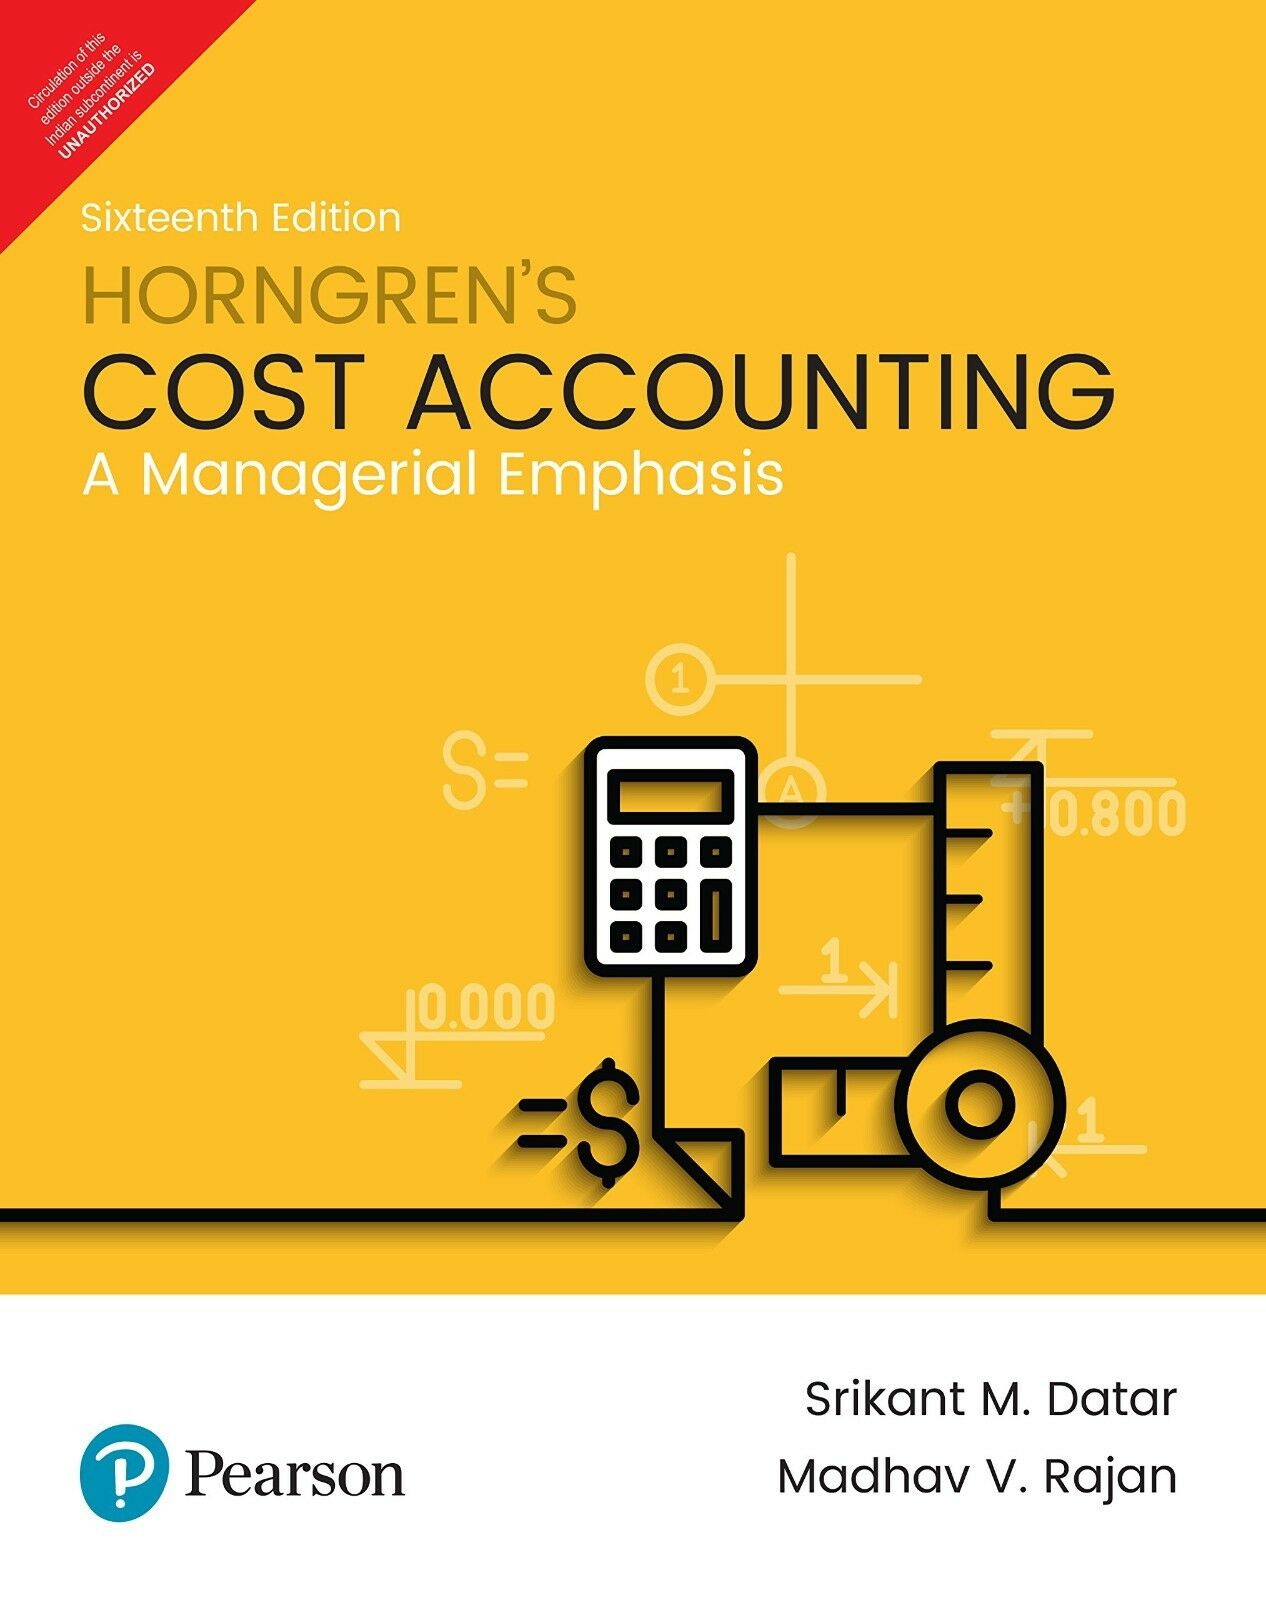 Horngrens cost accounting by charles t horngren madhav v rajan resntentobalflowflowcomponenttechnicalissues fandeluxe Image collections